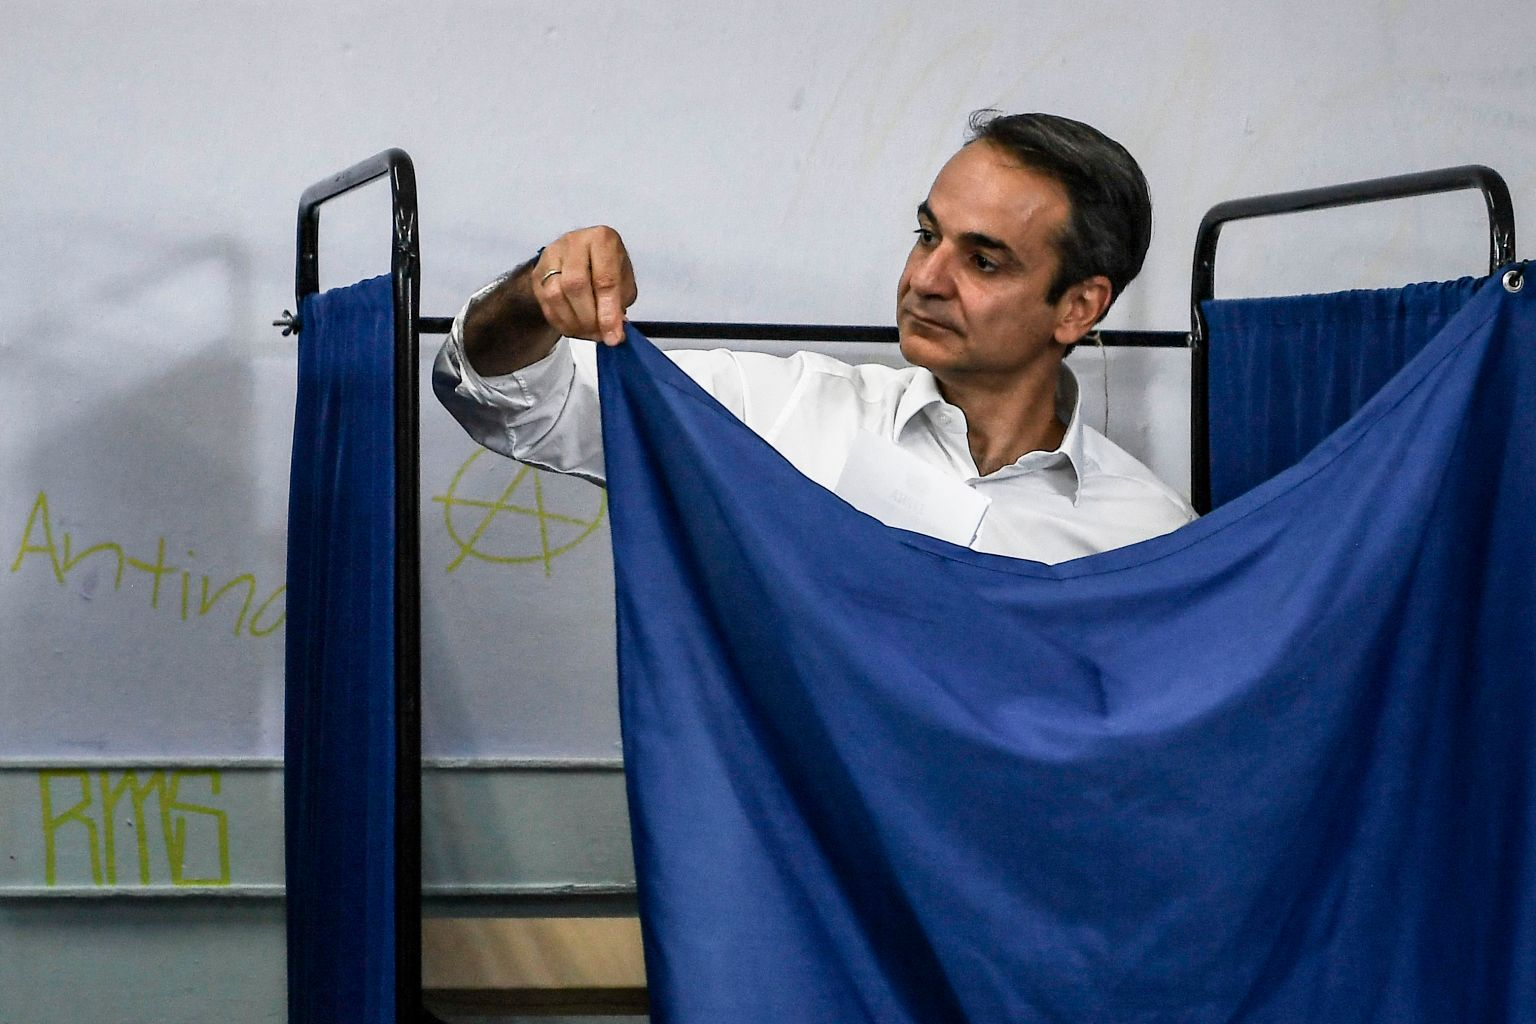 Greece's Prime Minister Kyriakos Mitsotakis Is Failing on the World Stage – Greece Accidentally Steered Into a Foreign Policy Crisis